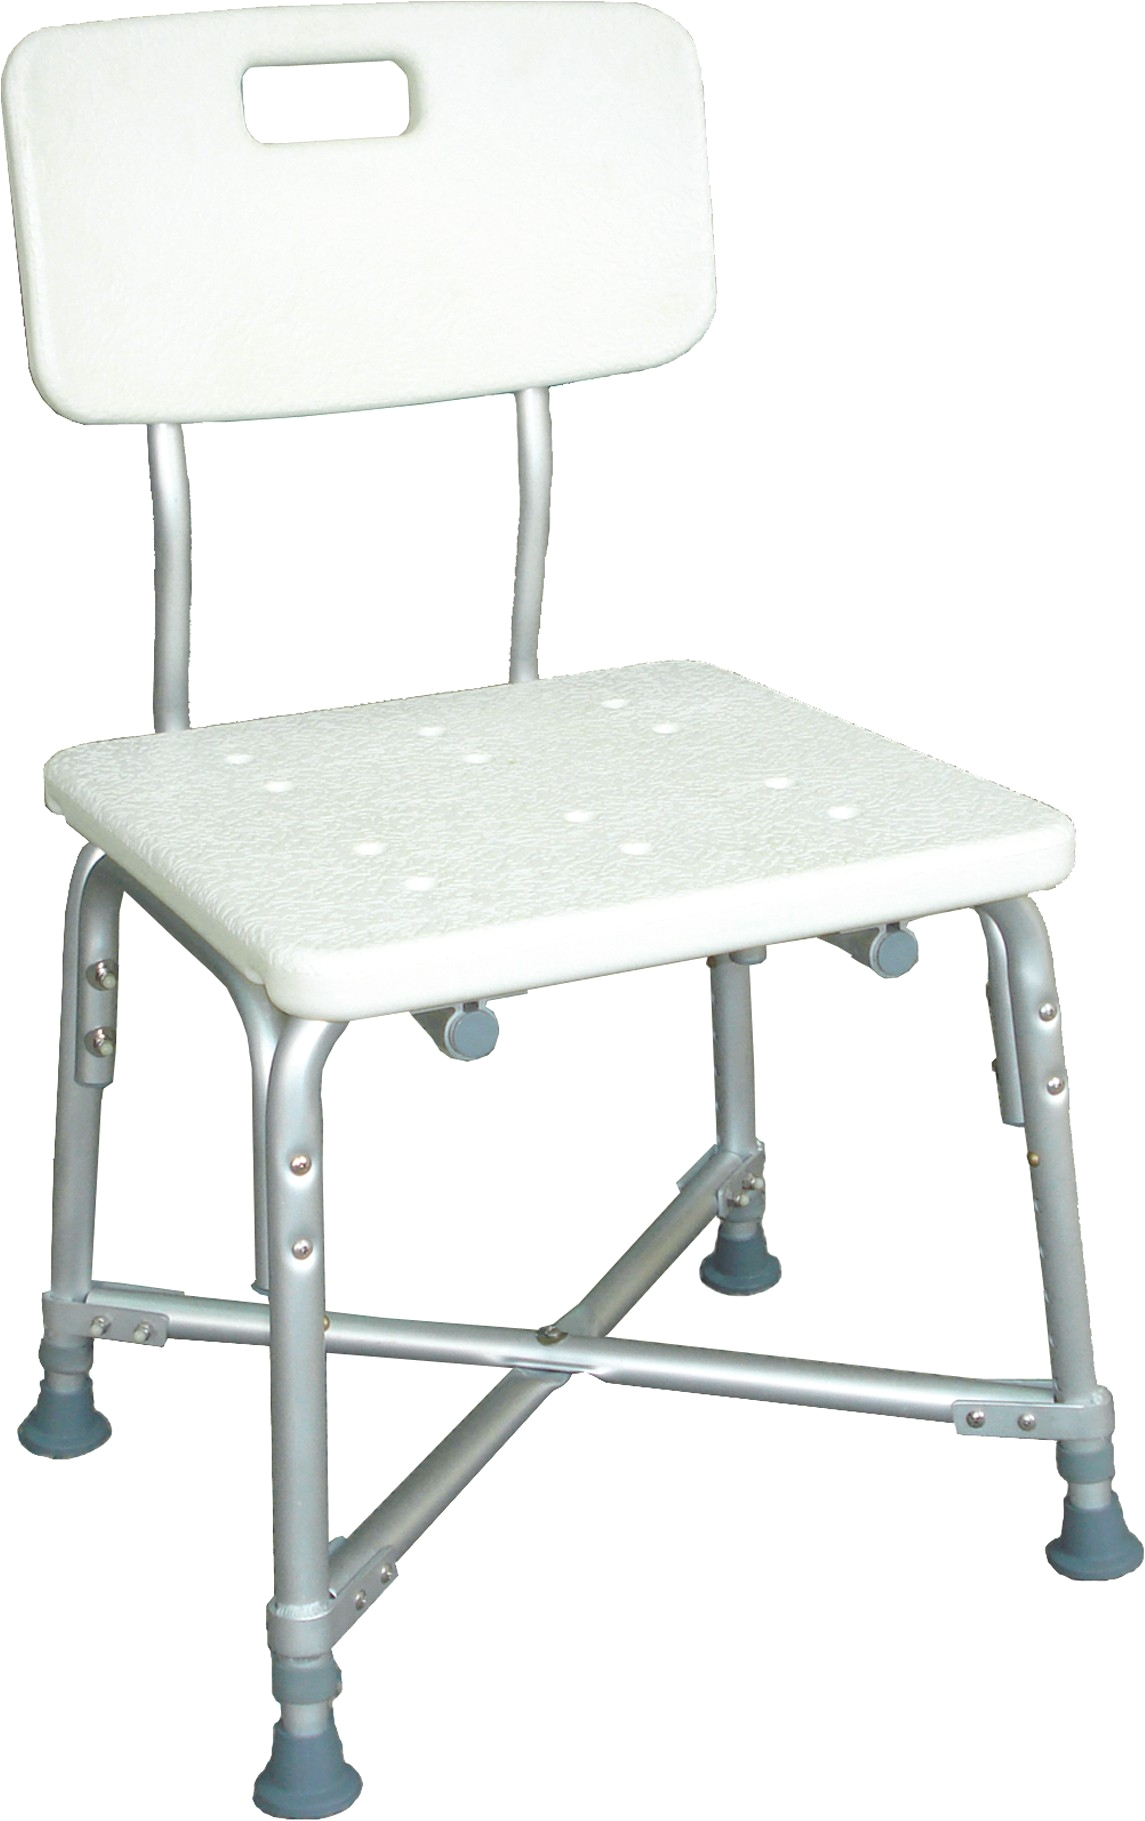 Used Special Needs Bath Chair Bath Products Archives Discount Medical Supply